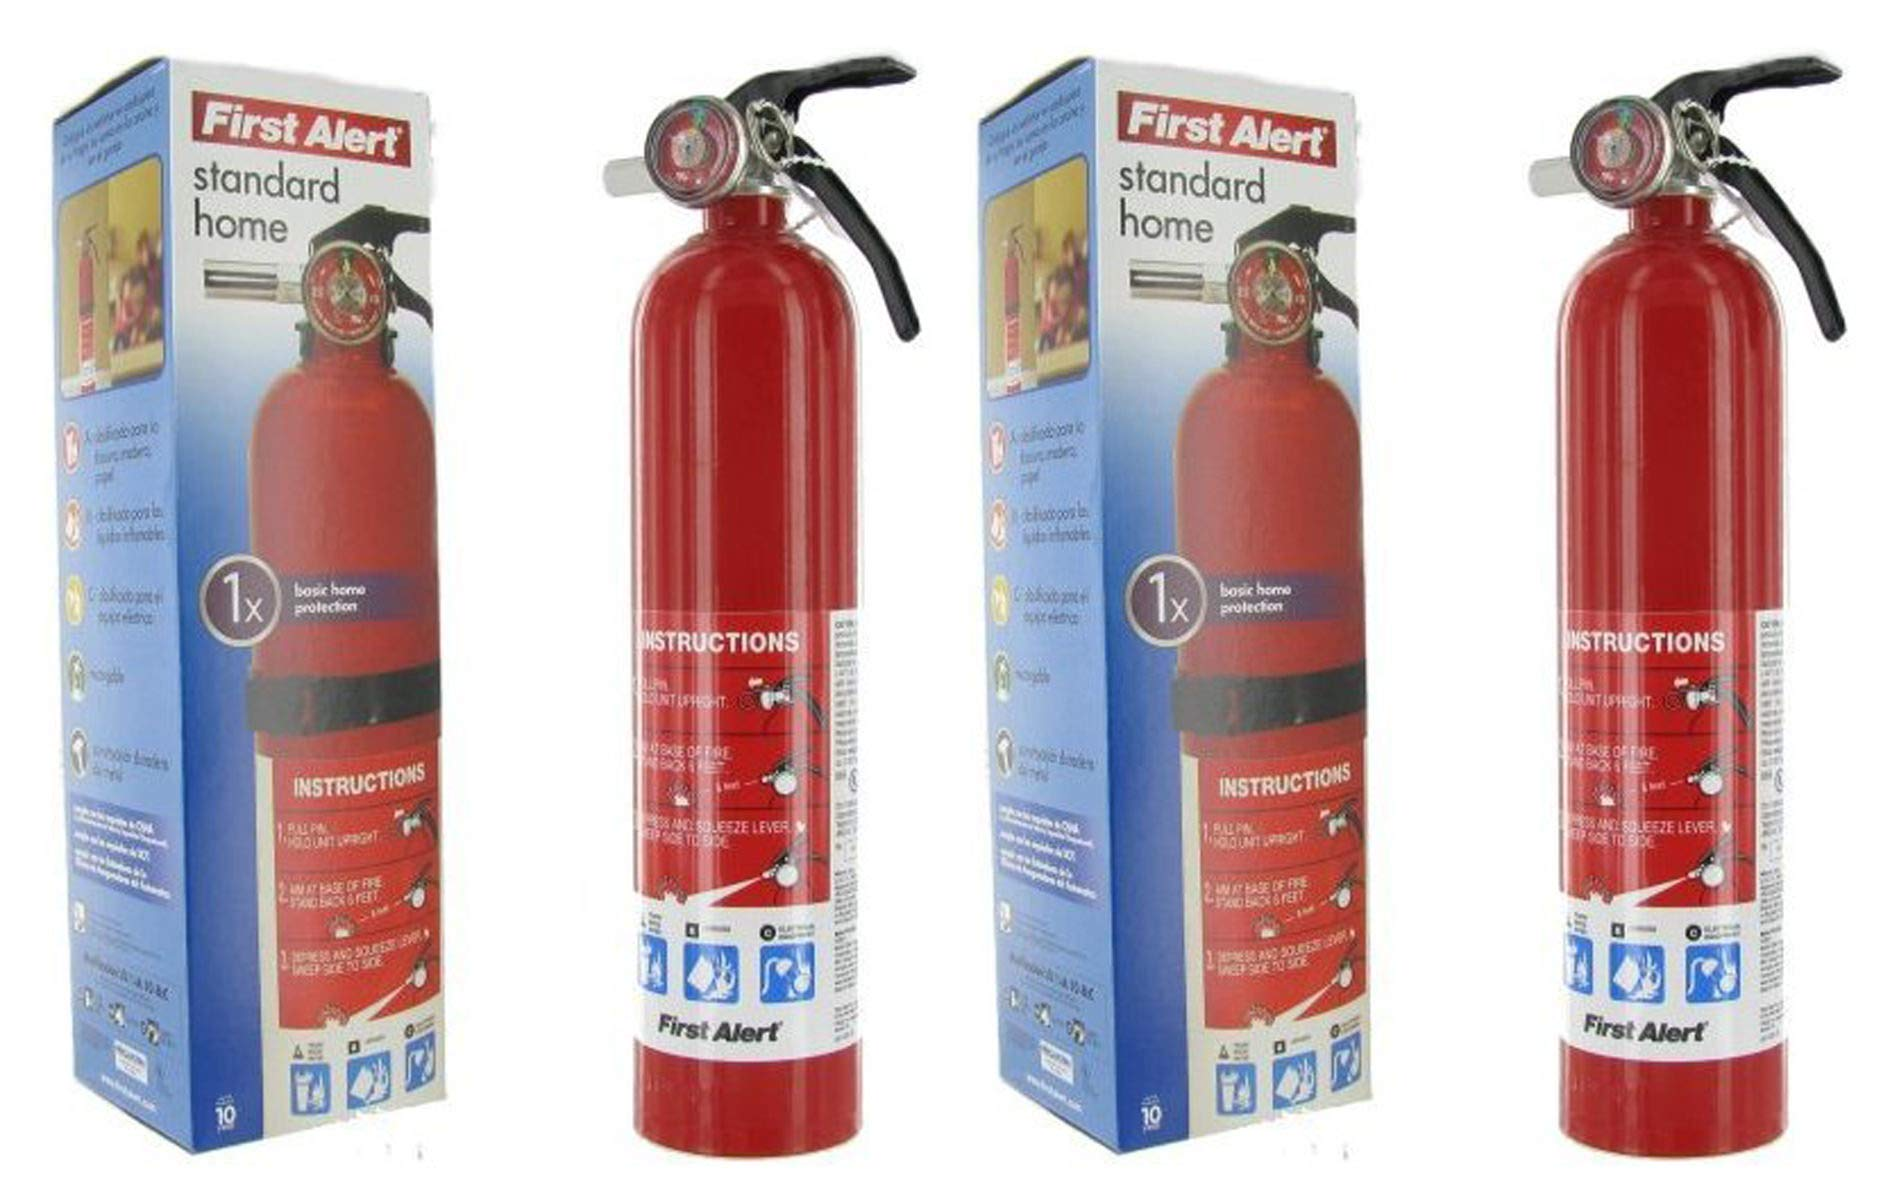 First Alert IUYEHDUH HOME1 ABC 2.5 Pound Rechargeable Fire Extinguisher-HOME1-1-A:10-B:C-10-Year Warranty 2 Pack